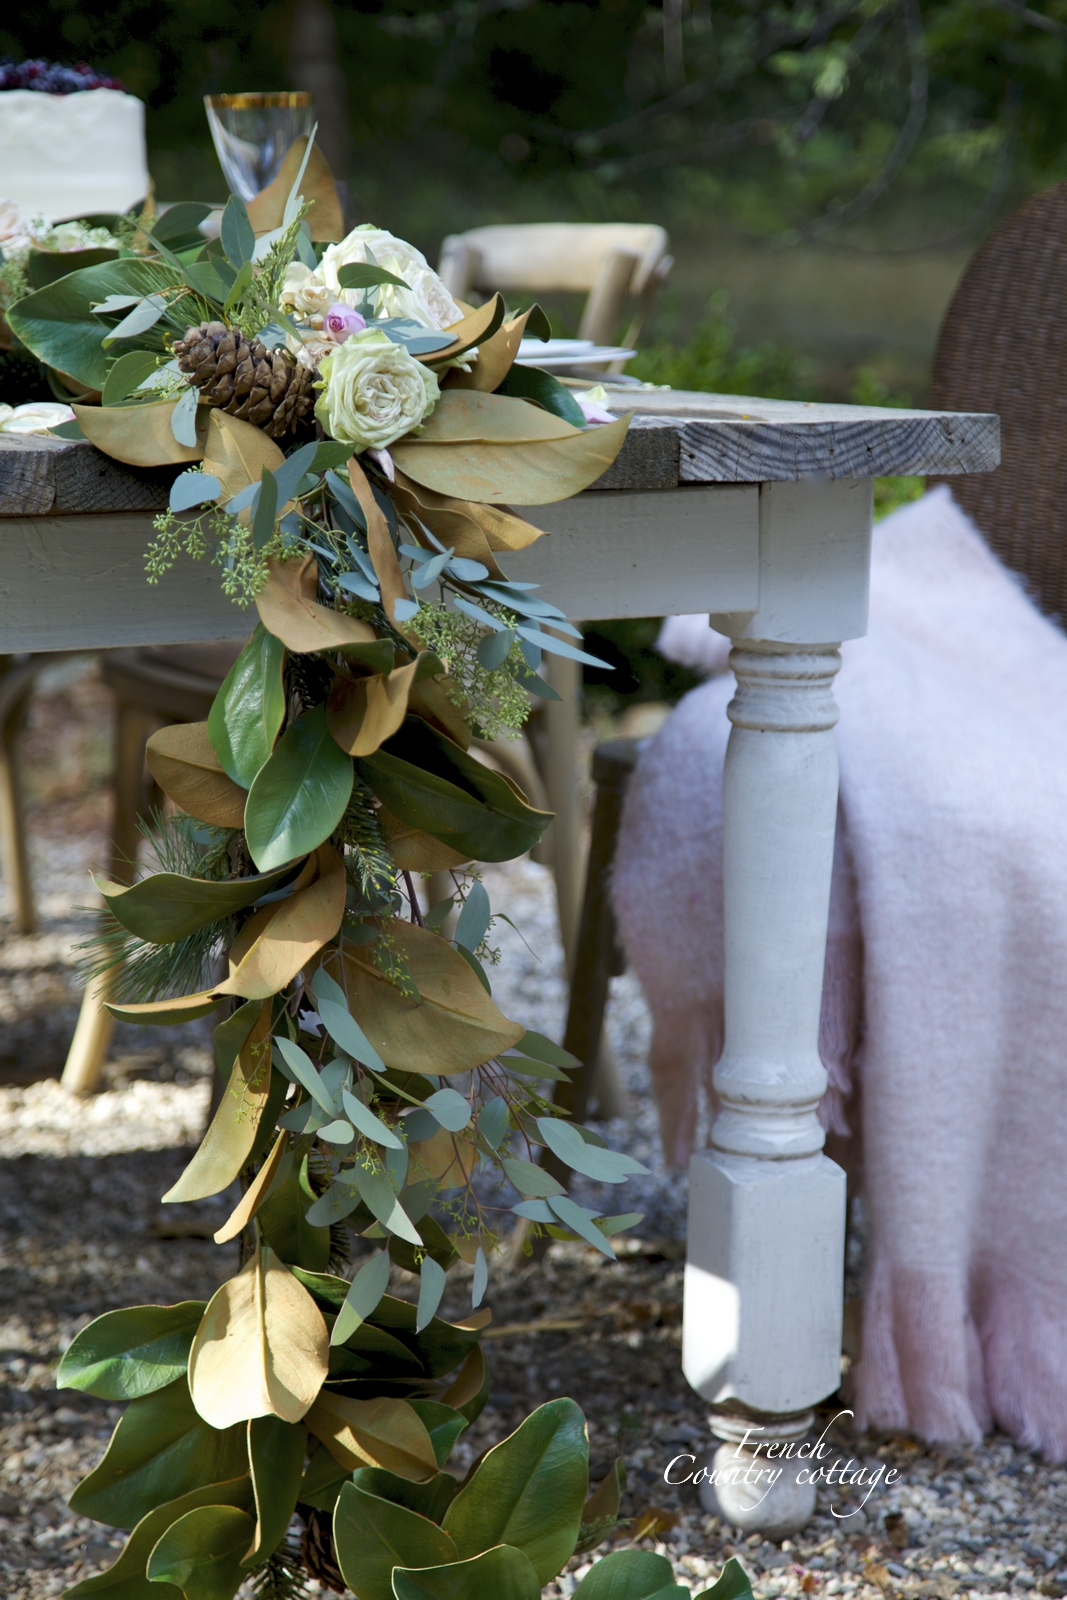 Creative Holiday Garland Ideas